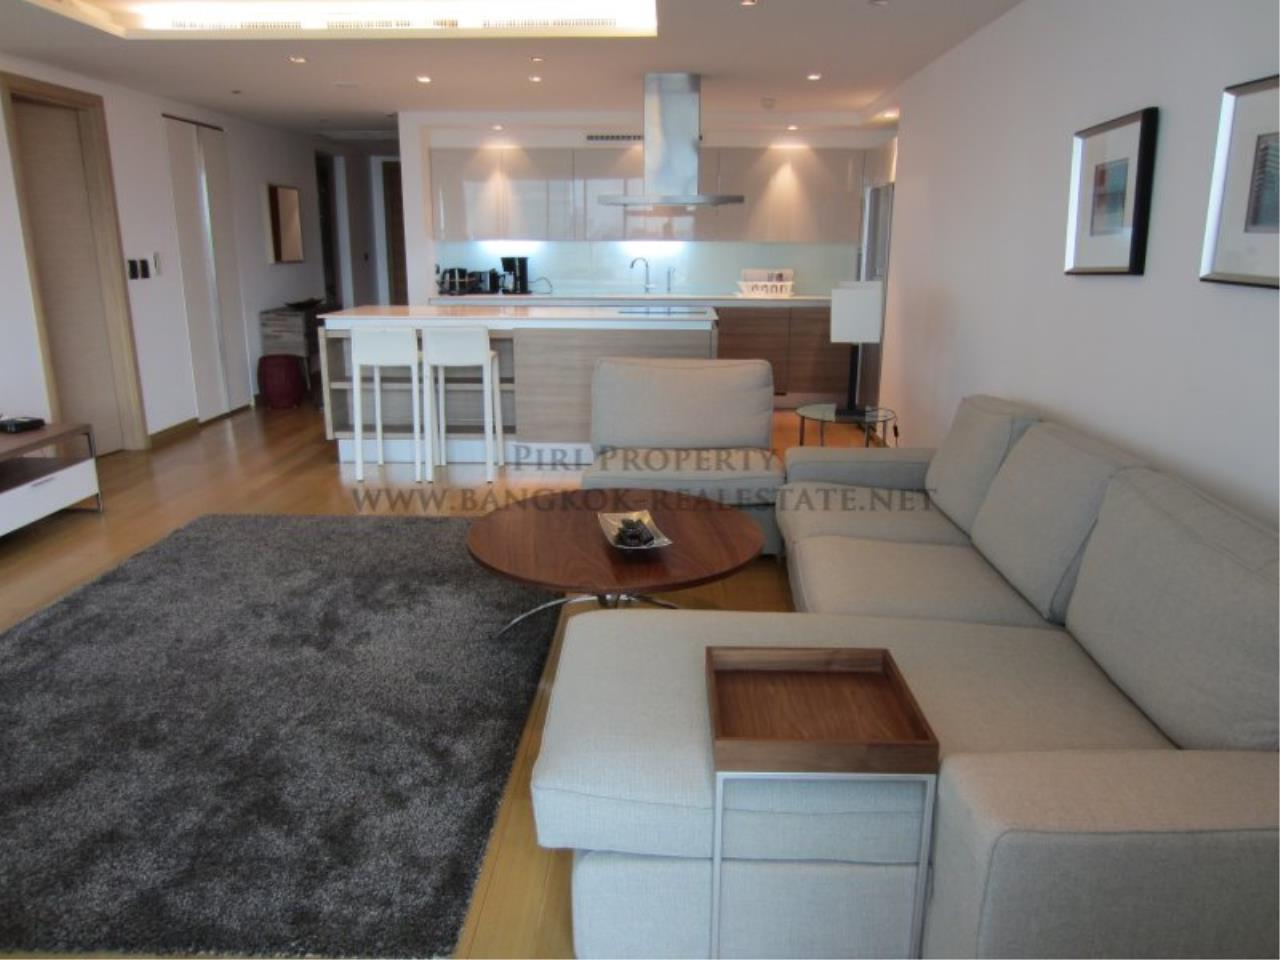 Piri Property Agency's Spacious 2 Bedroom Condo or Rent in Ari - Le Monaco 3